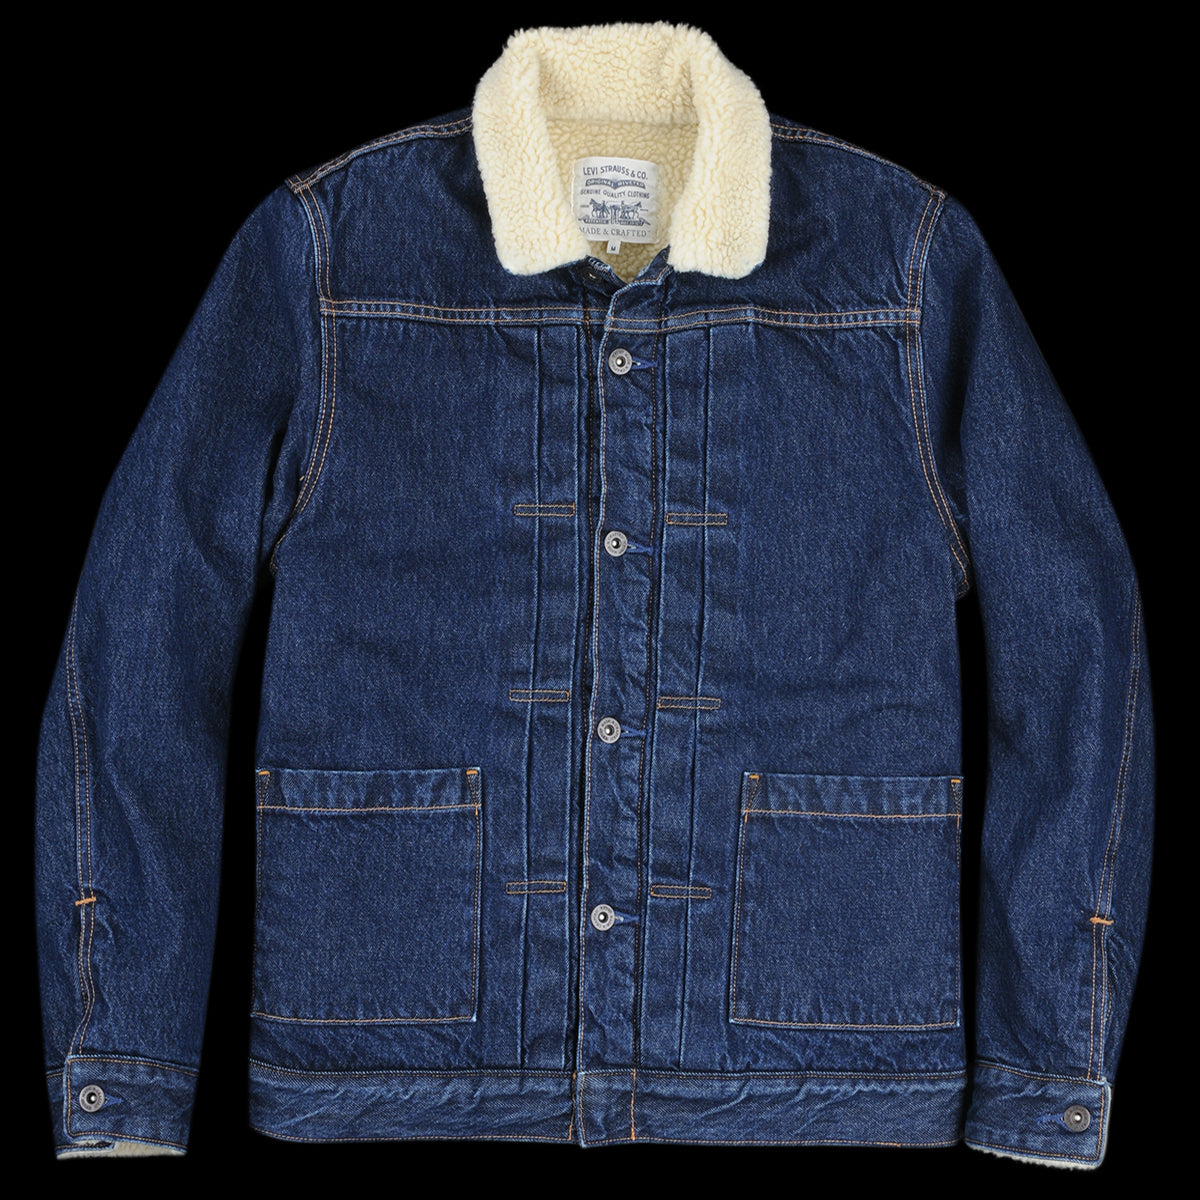 Canyon amp; Type Levi's Sherpa Crafted Truck Made In Ii qwqxHt